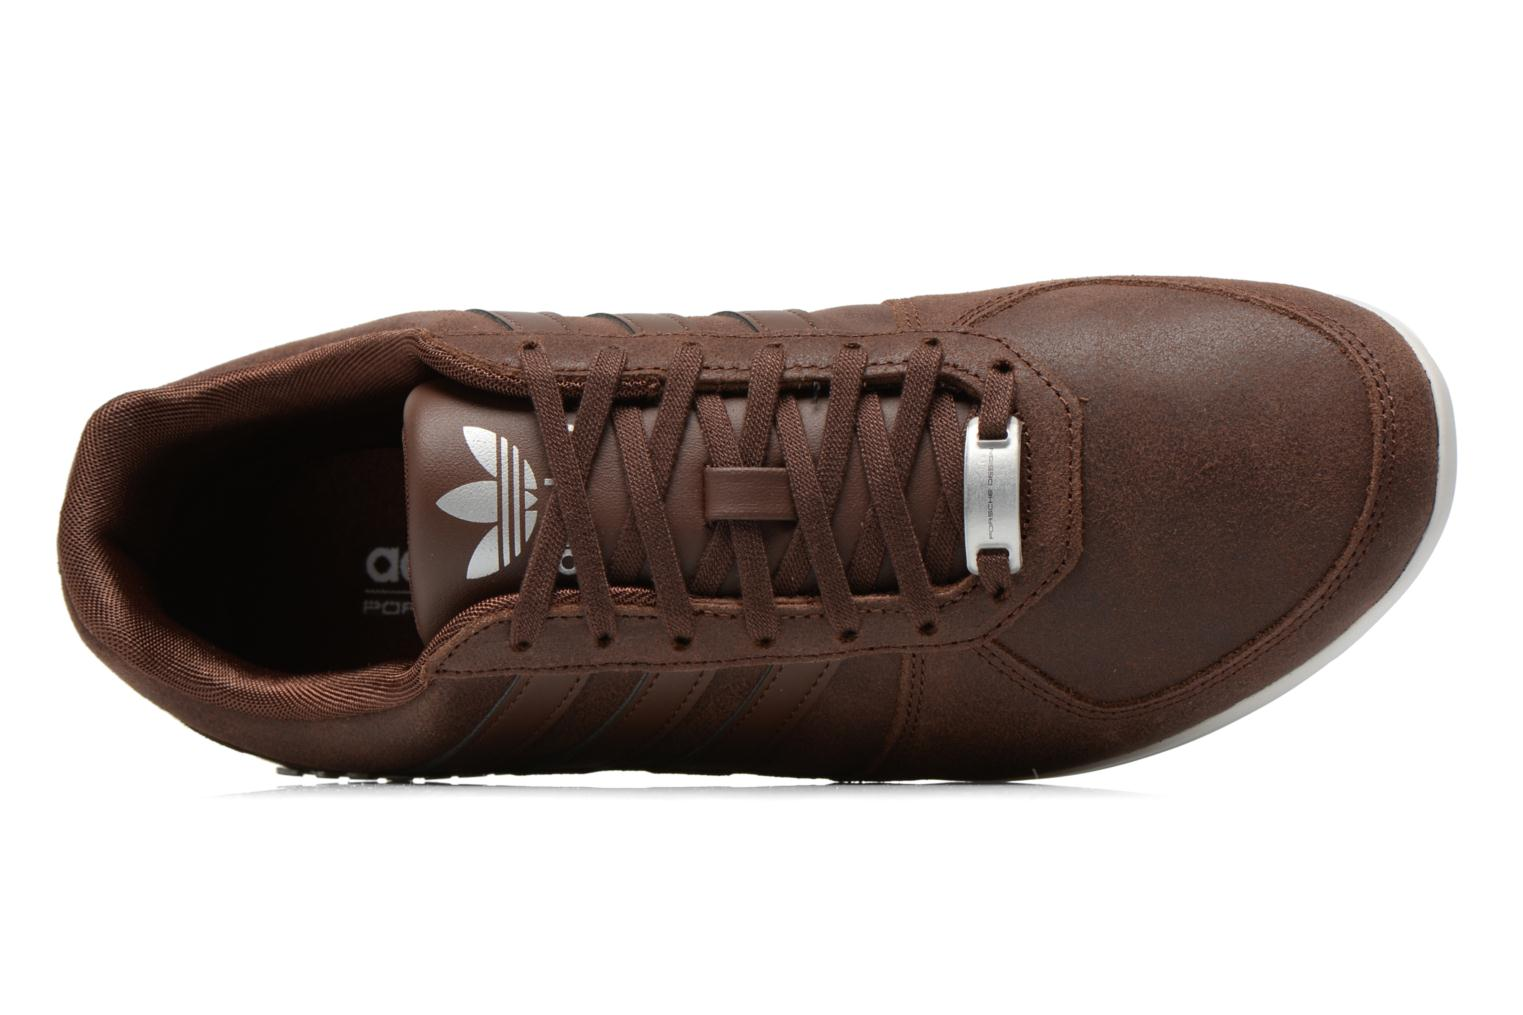 Trainers Adidas Originals Porsche 360 1.2 Suede Brown view from the left